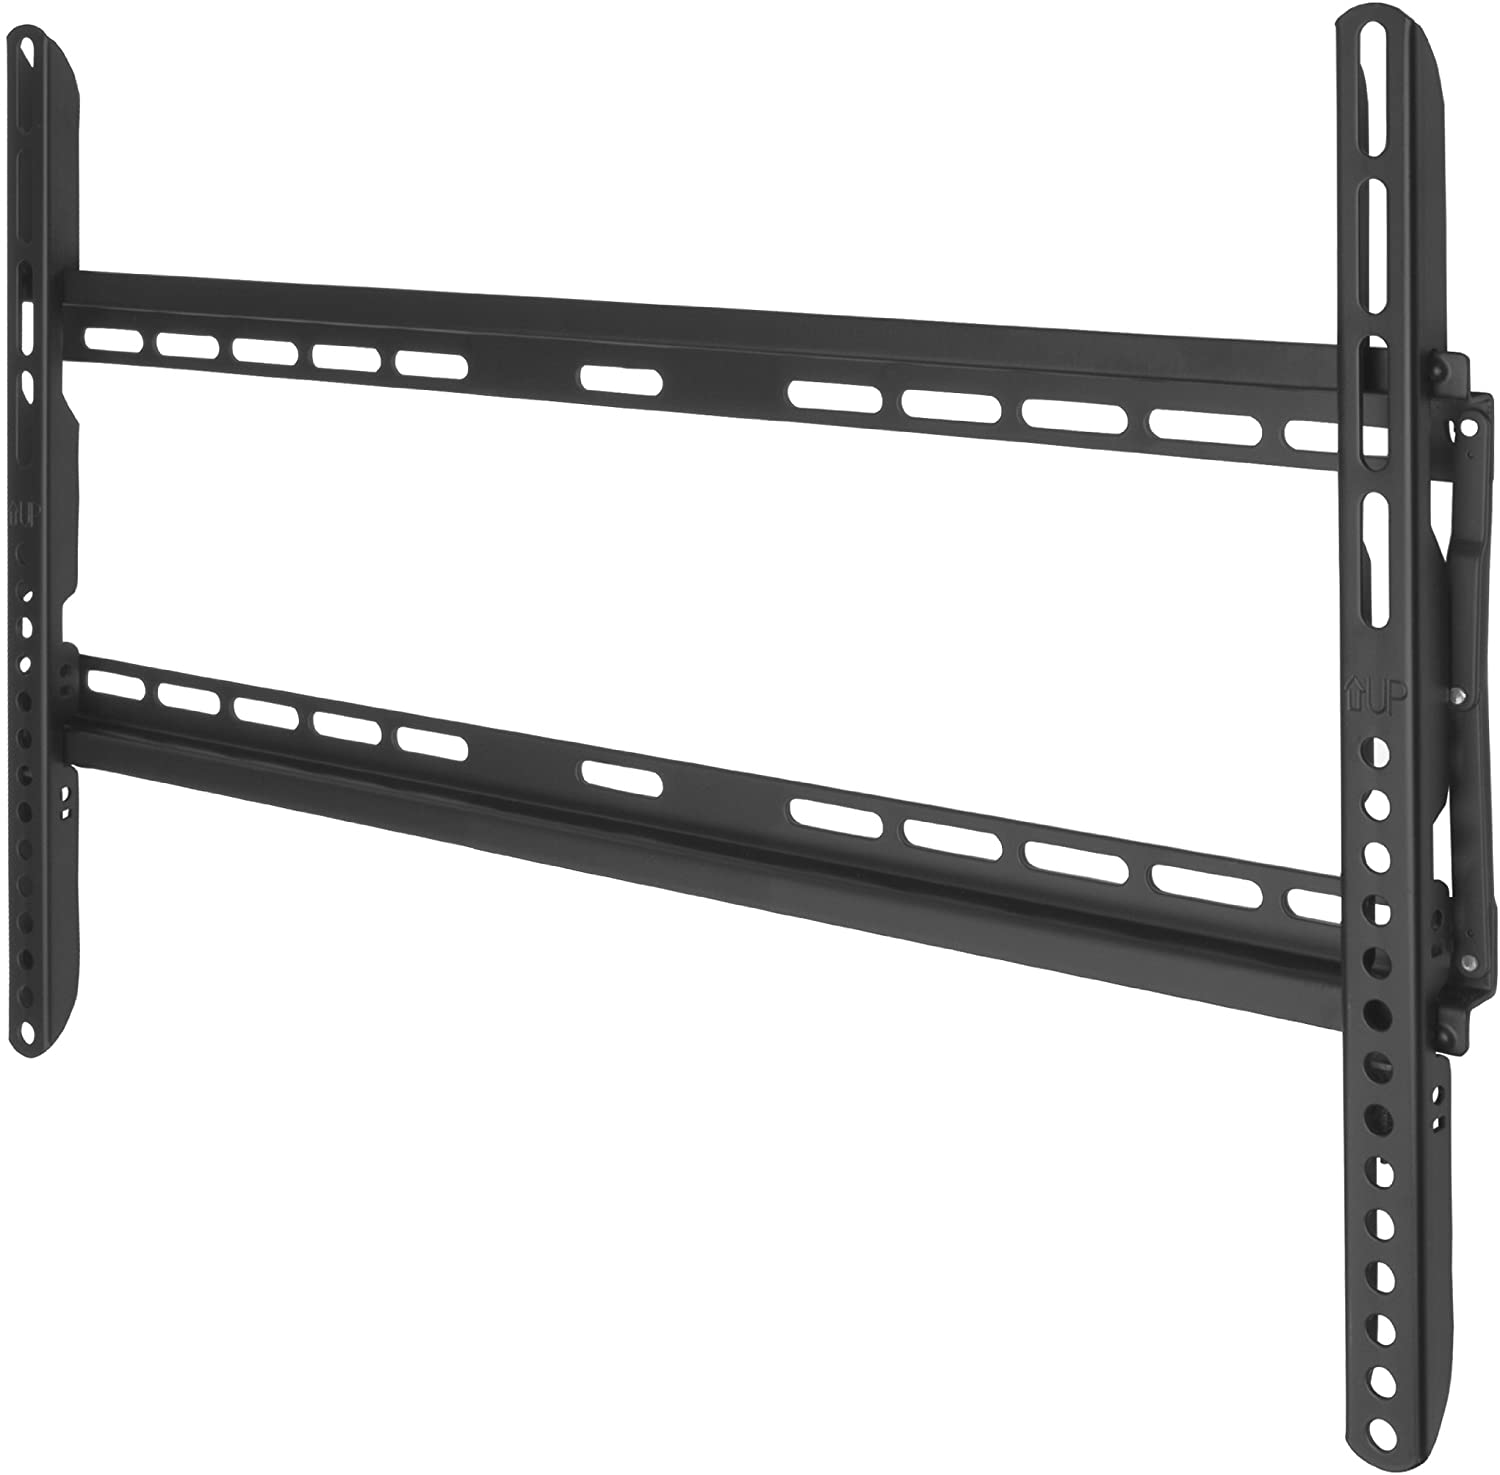 Swift Mount SWIFT600-AP Low Profile TV Wall Mount for 37-inch to 80-inch TVs,Black